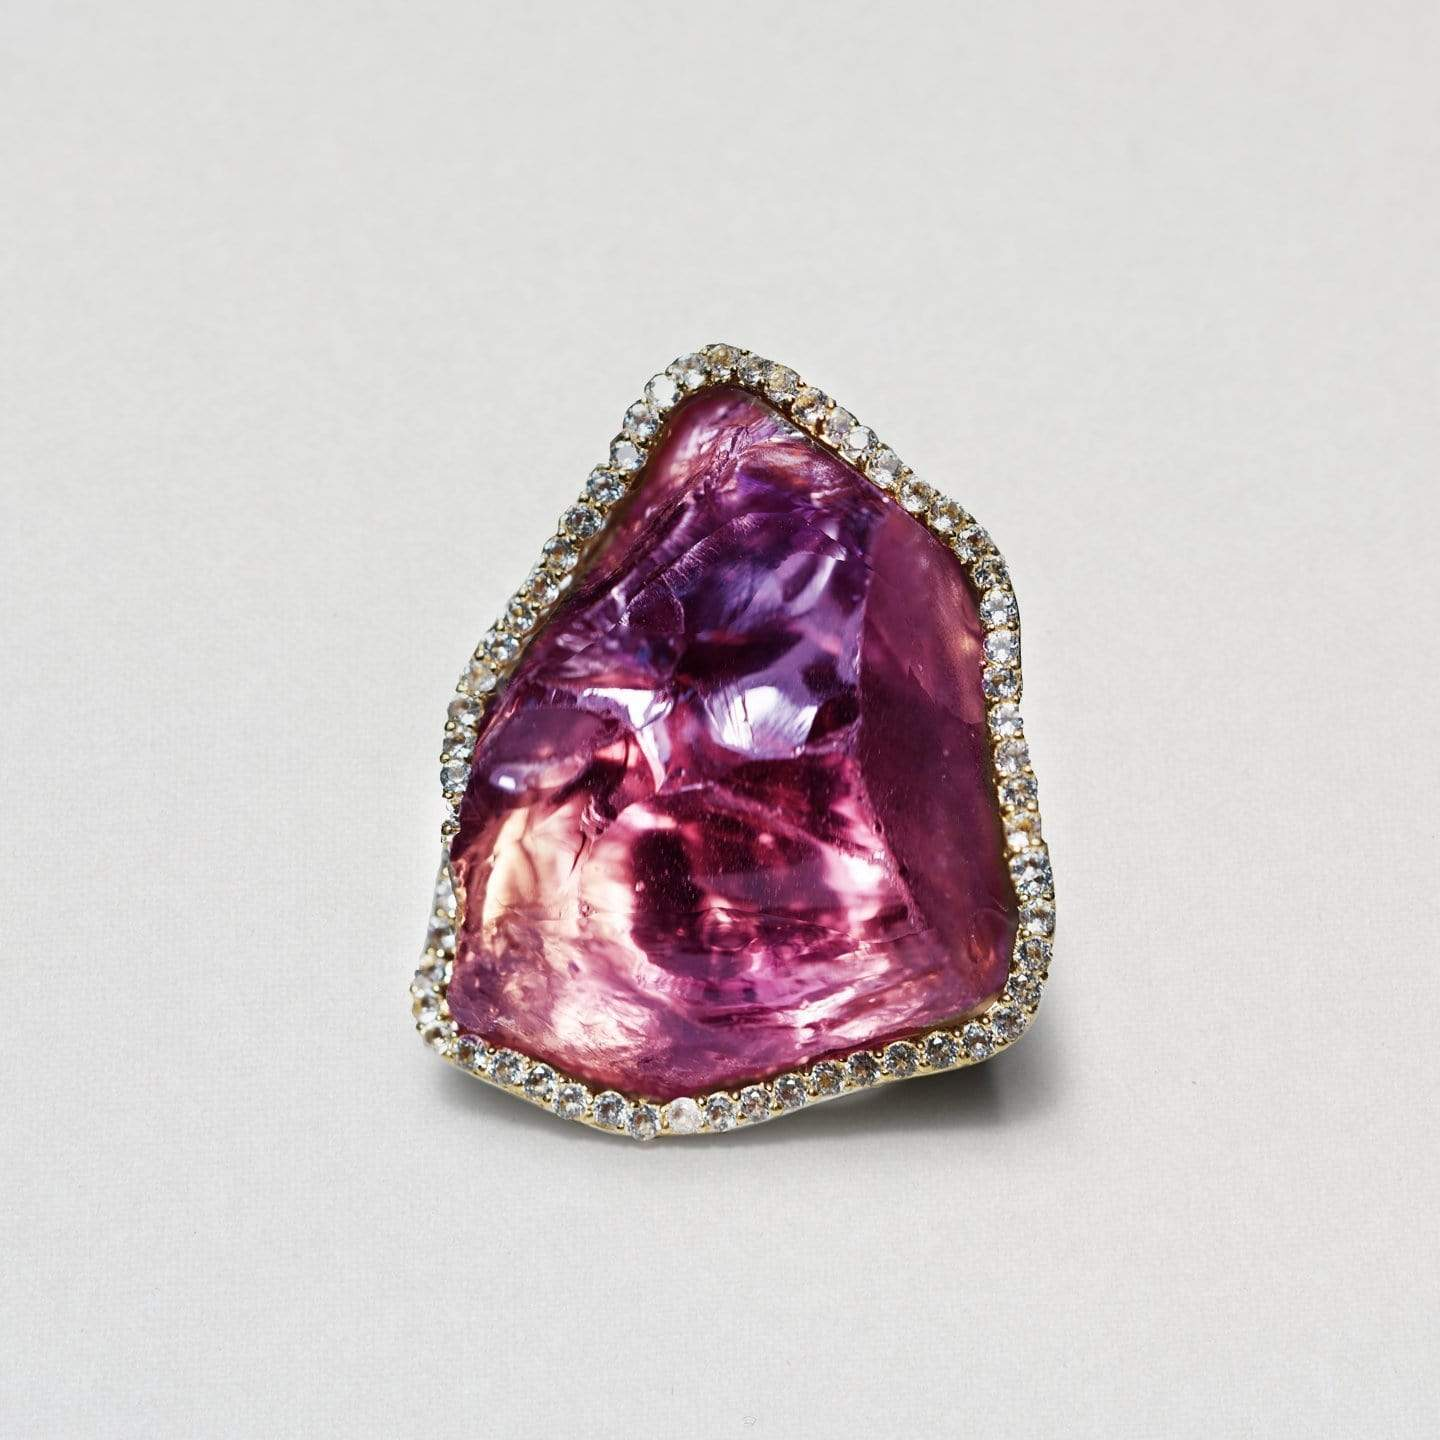 Raphael Ring, Amethyst, Exclusive, Gold, gray, Rhodium, spo-disabled, StoneColor:purple, Style:Statement, Topaz, Type:LargeSoloStone Ring